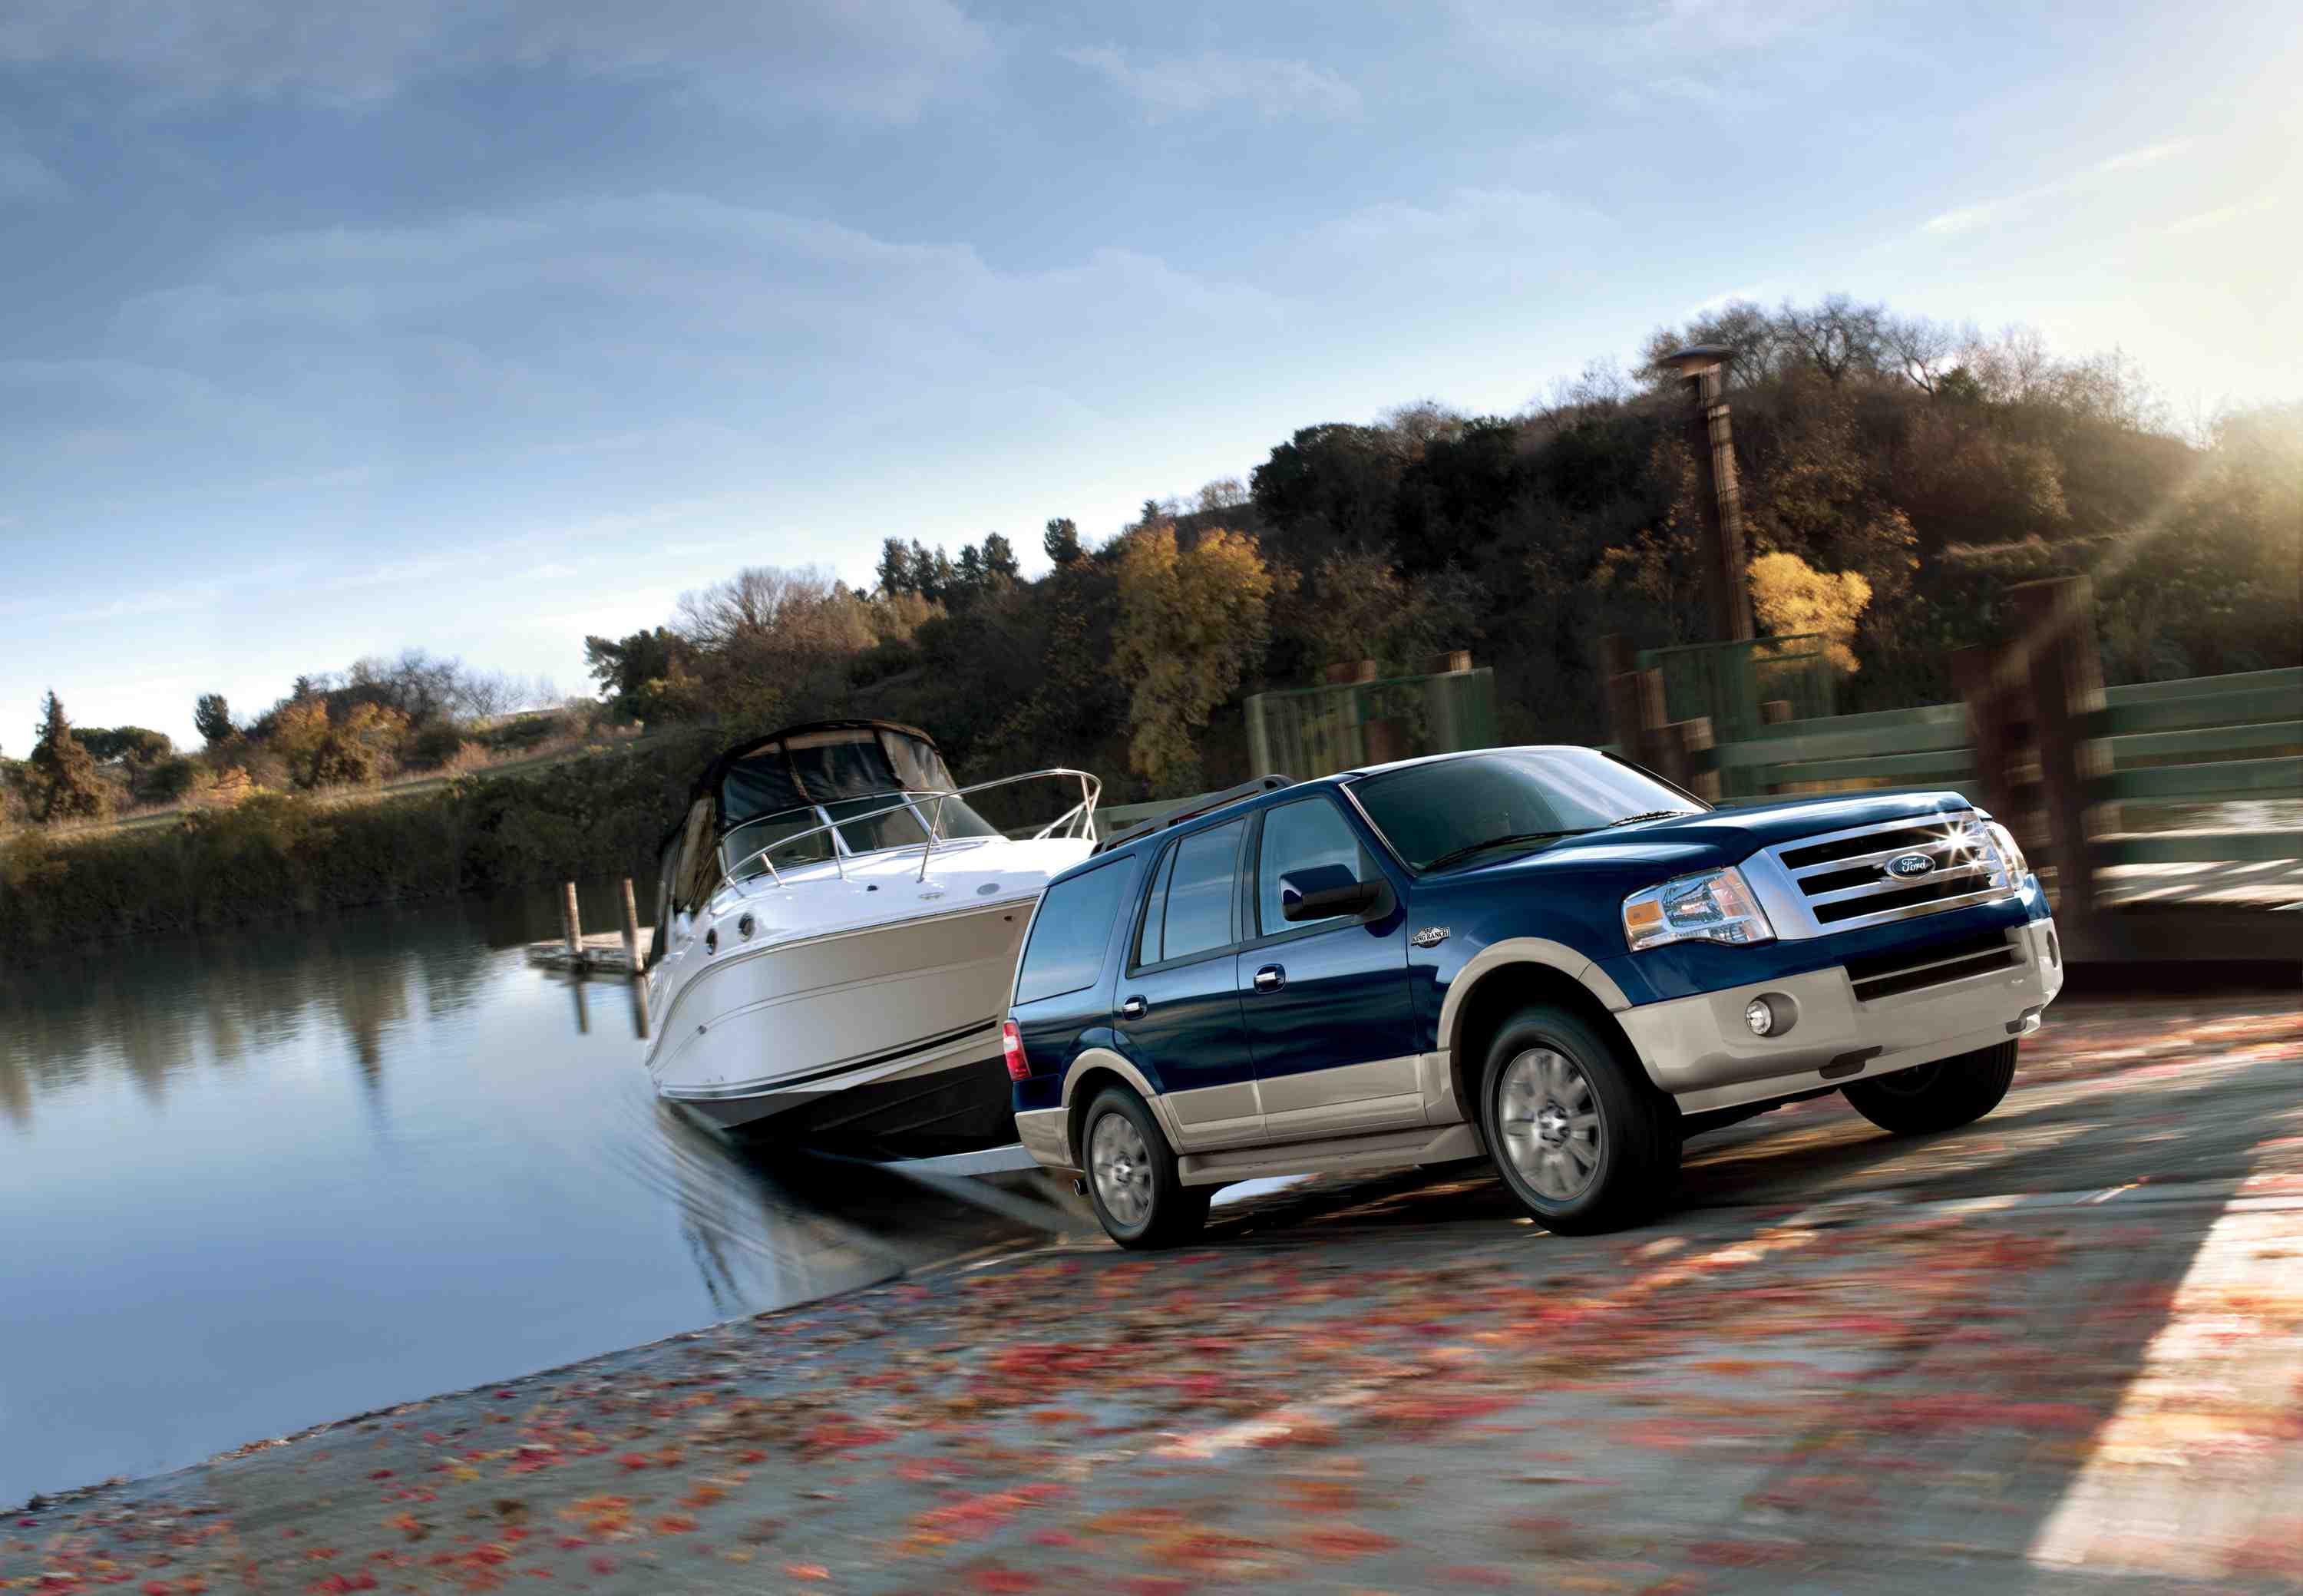 whole expedition ranch kingranch ip brings edition ford hr gaywheels the king